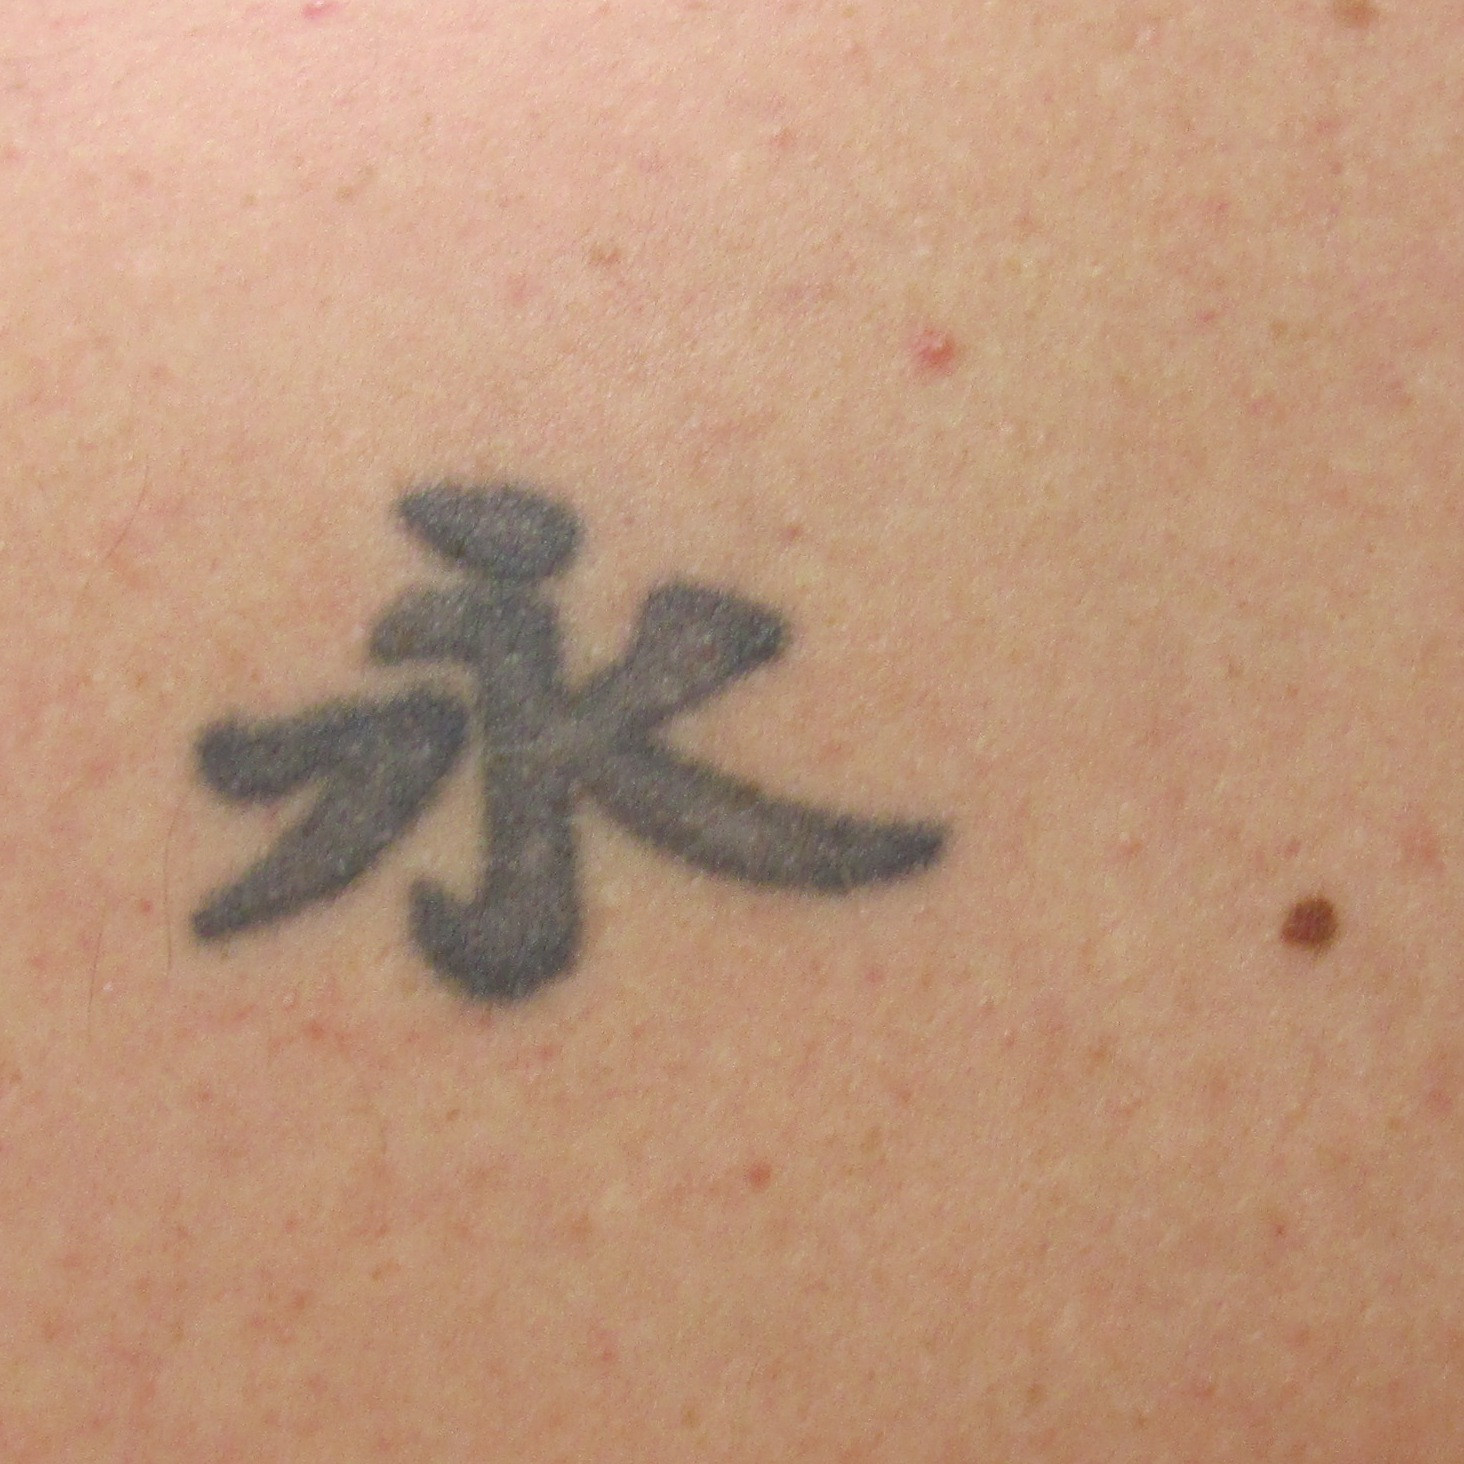 before complete tattoo removal